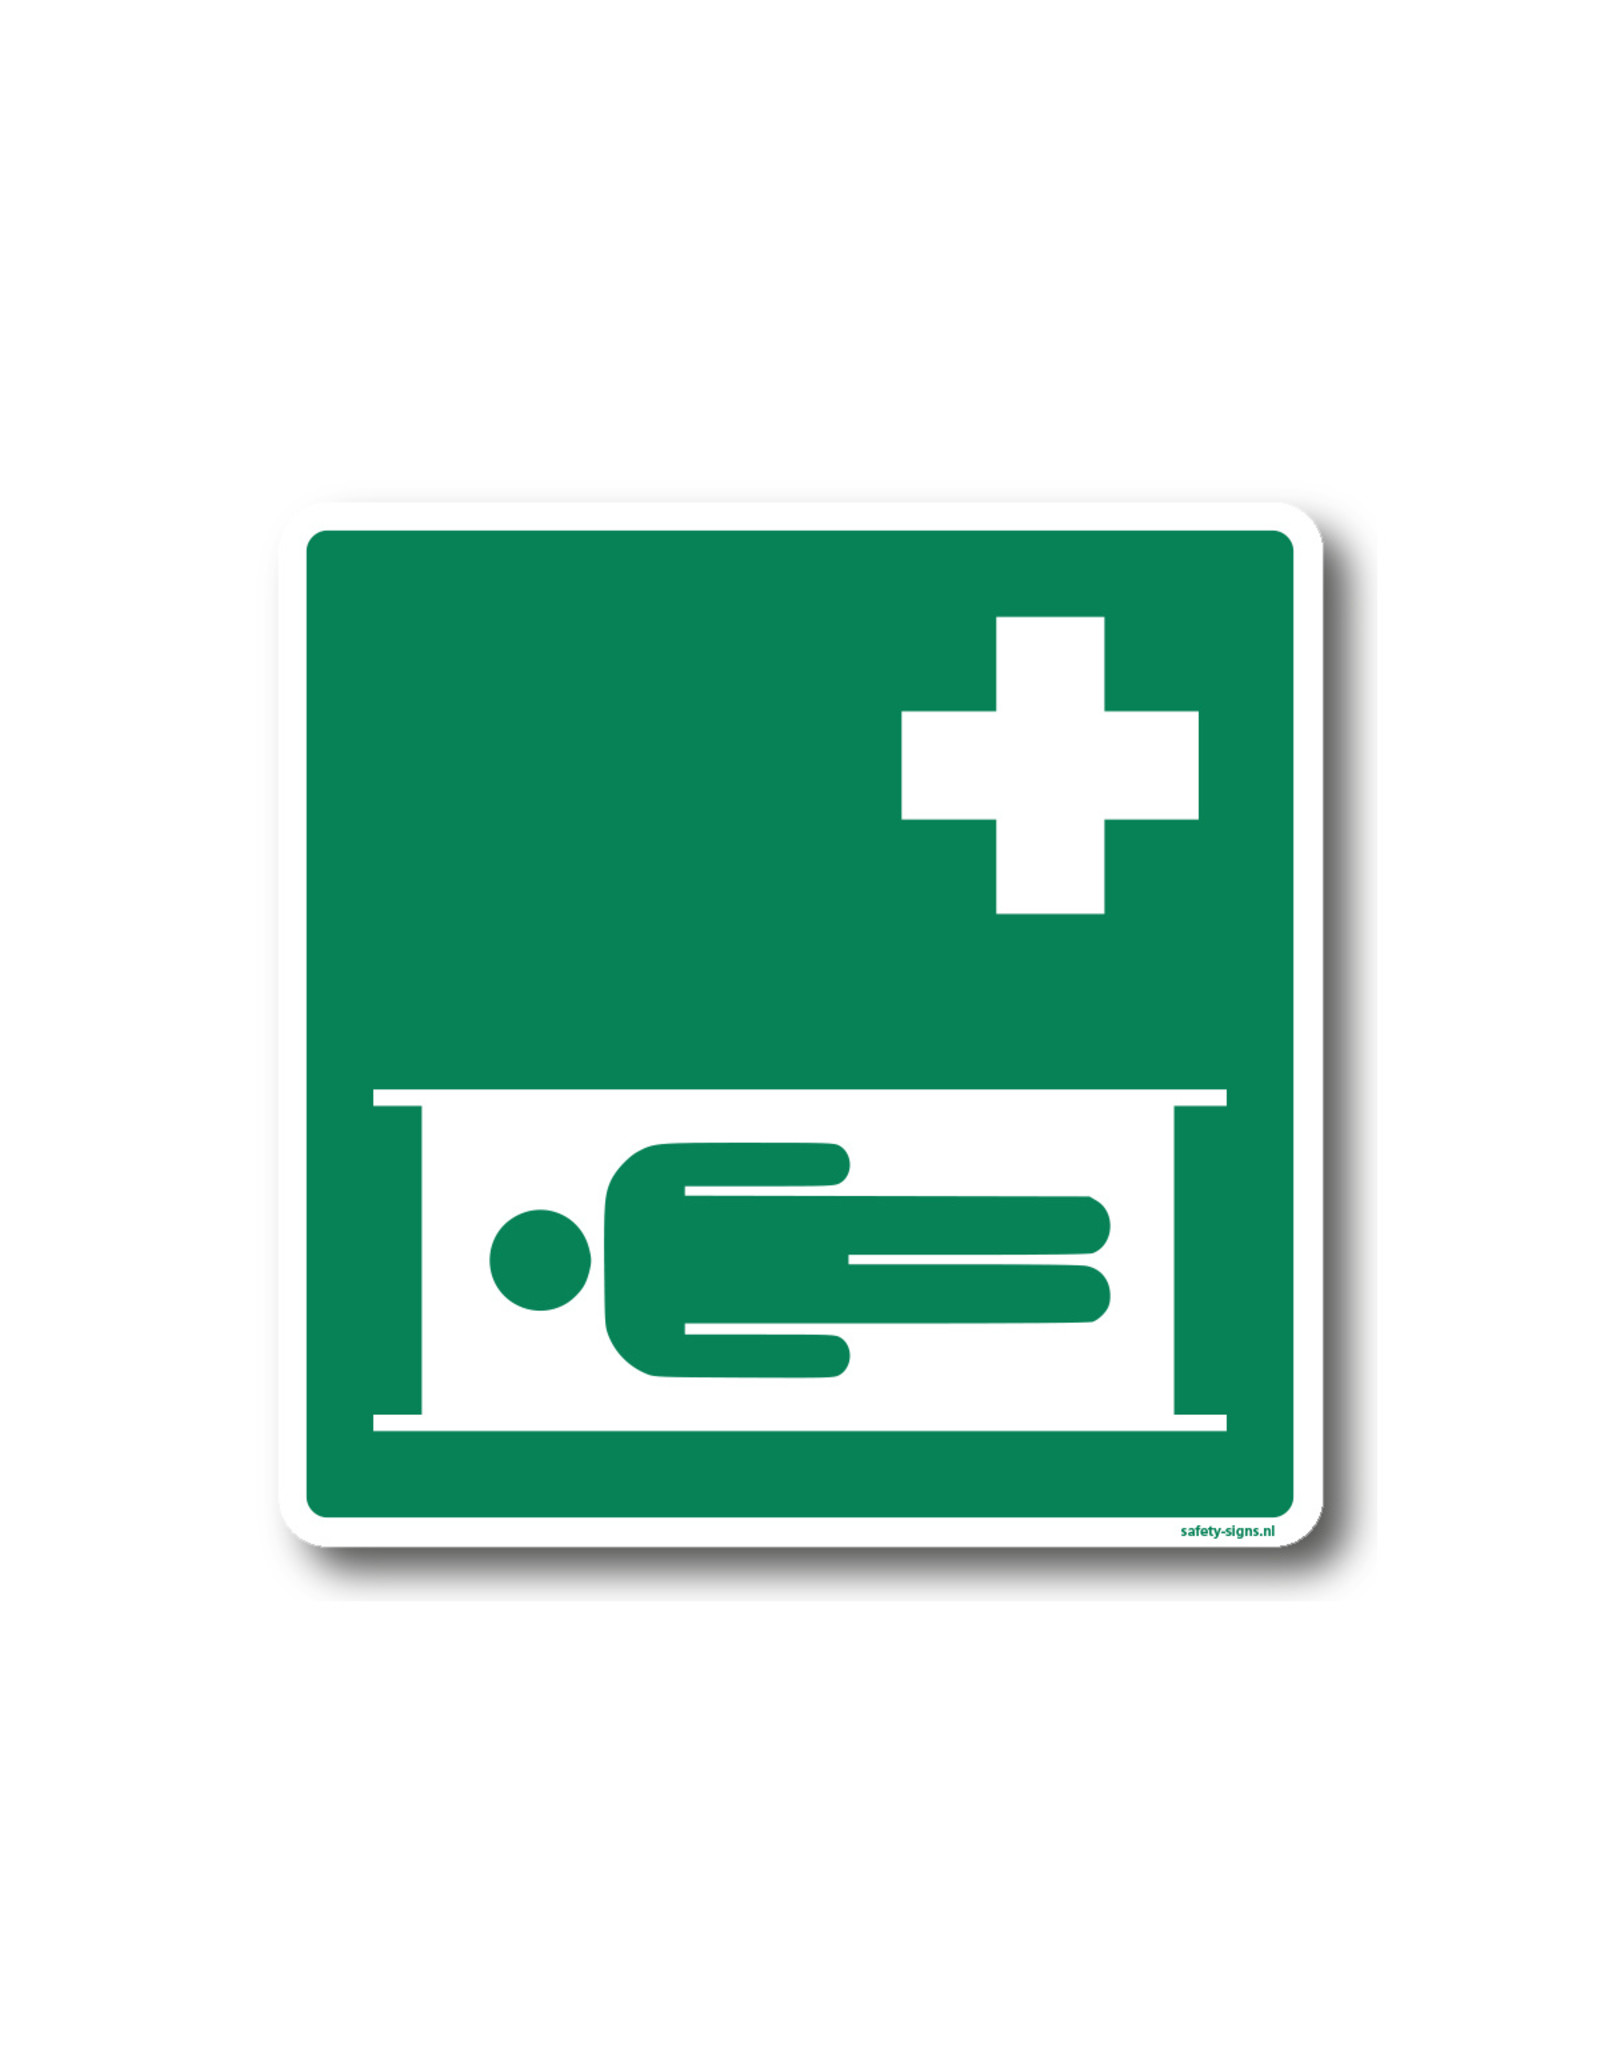 BrouwerSign Pictogram - E013 - Brancard - ISO 7010